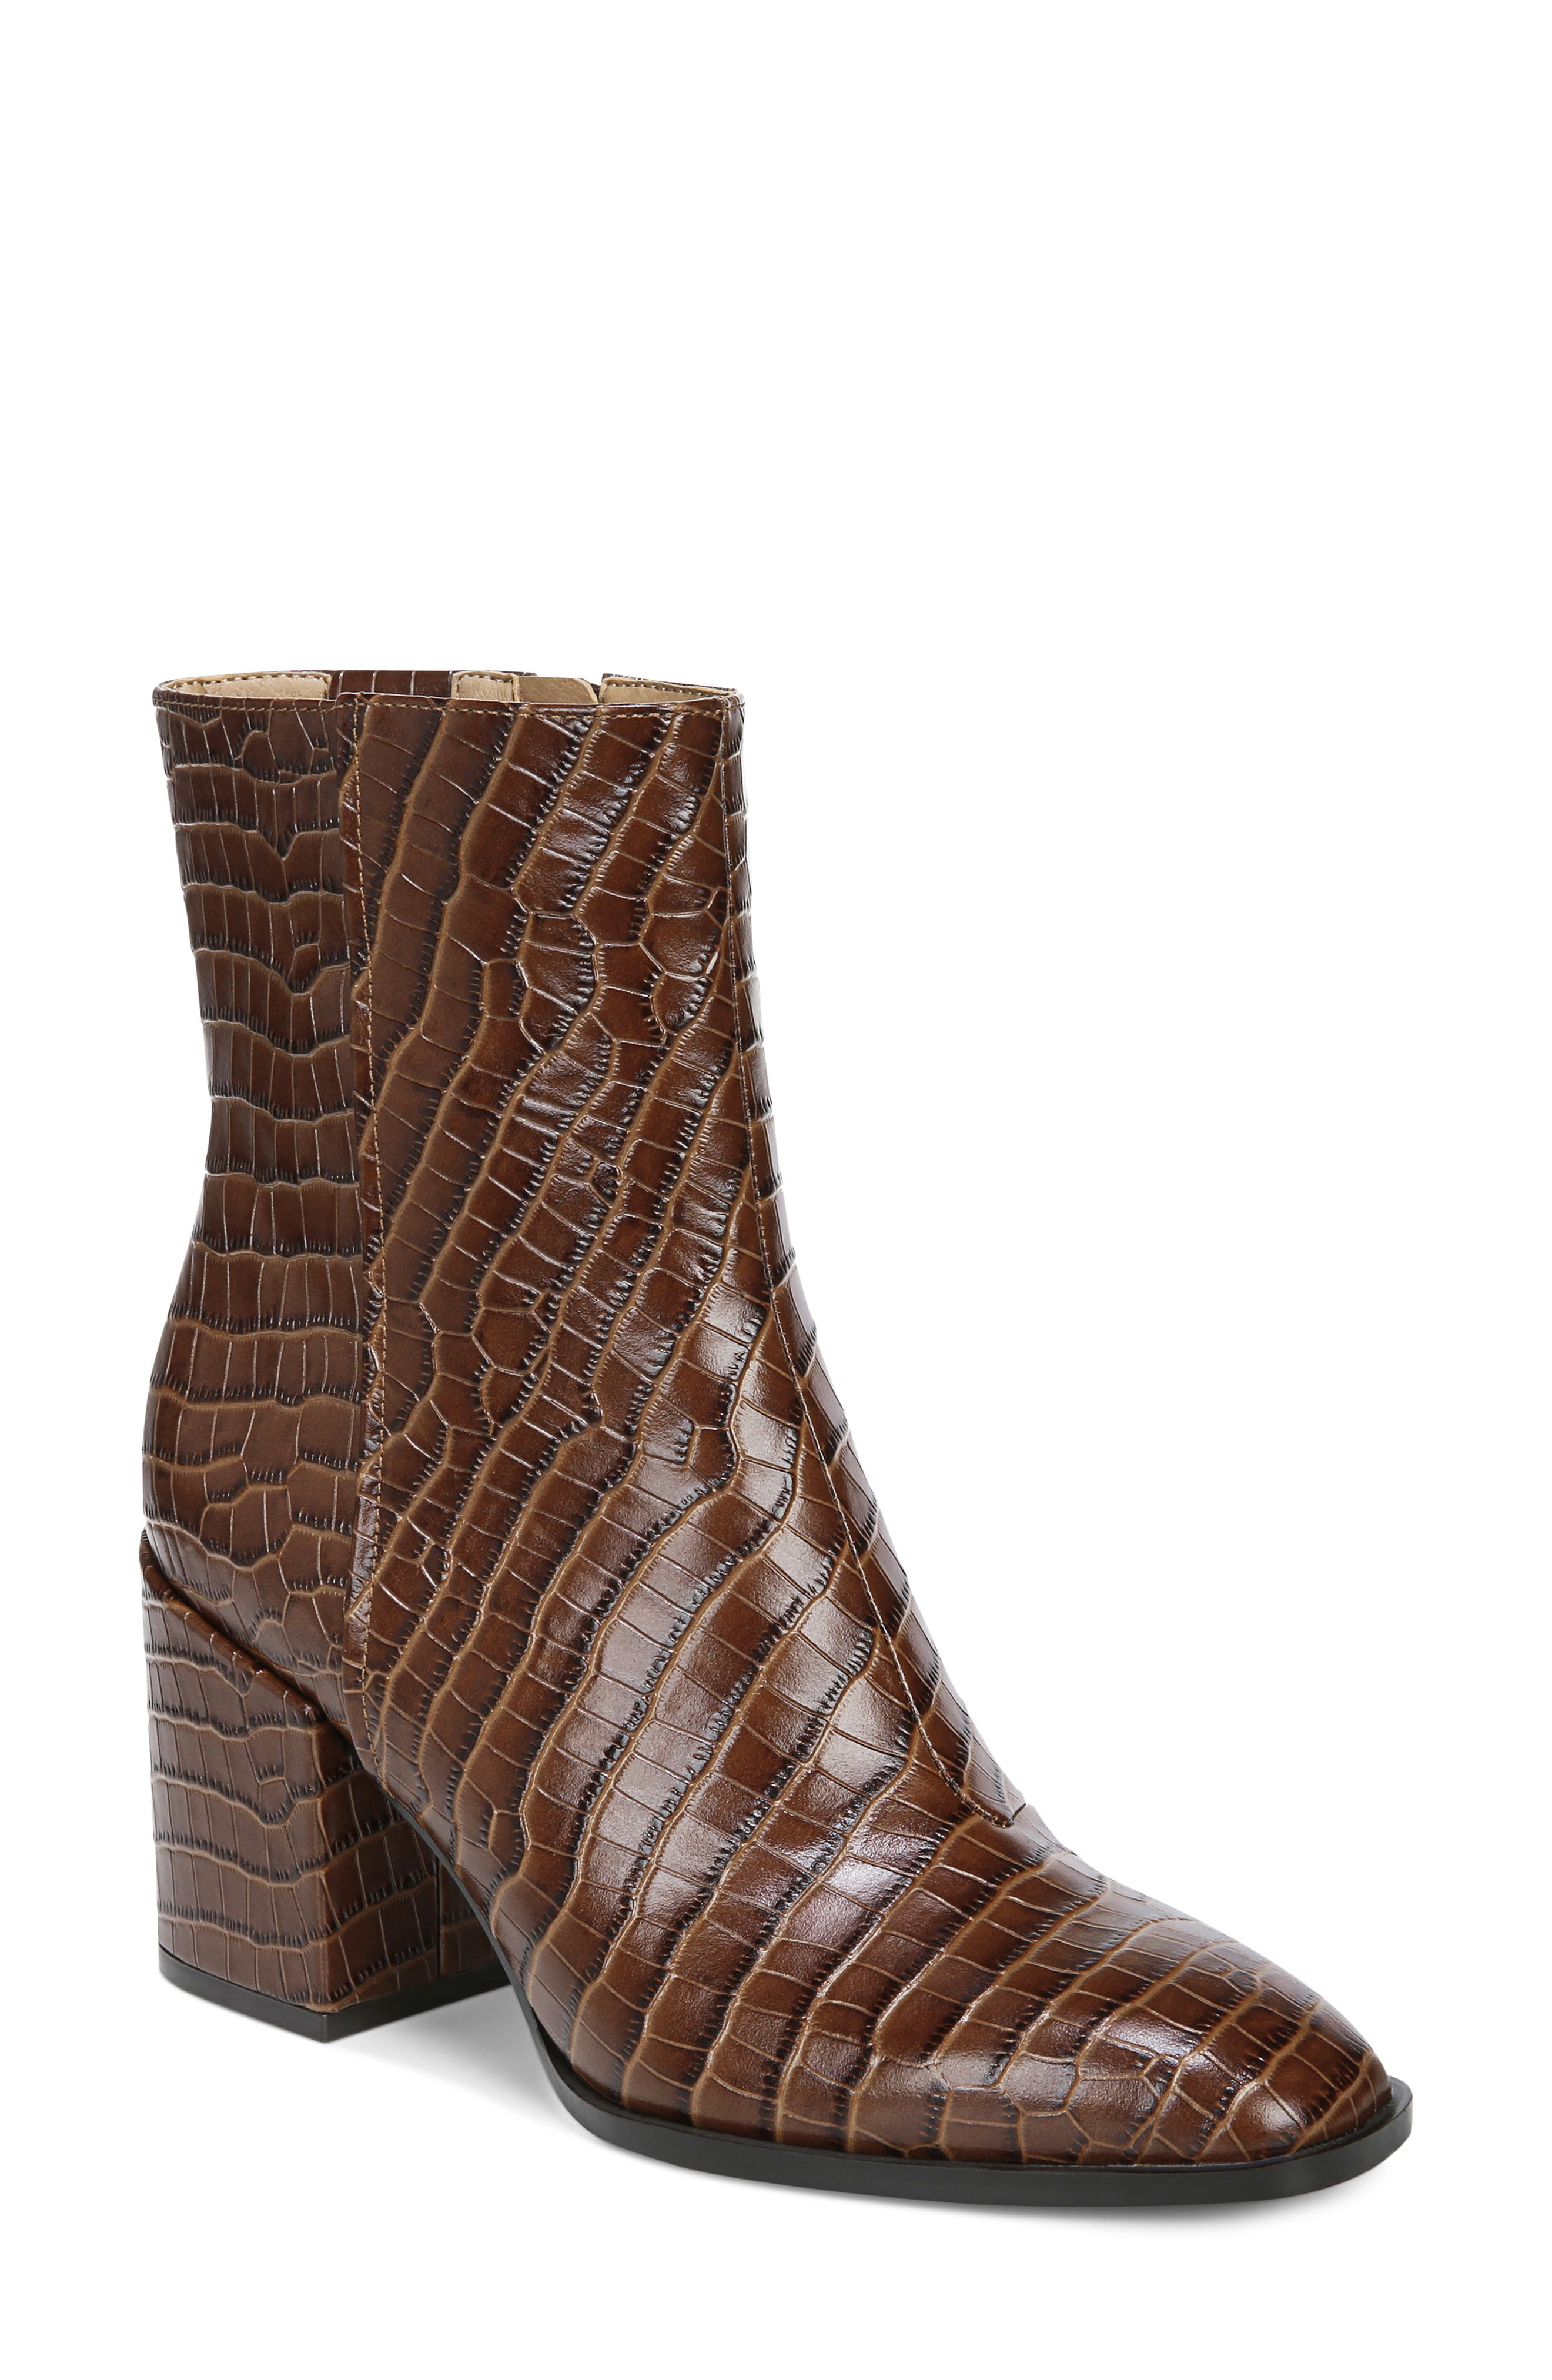 Take on the town in a vintage-inspired, croc-embossed boot elevated by a walkable block heel. An orthotically cushioned footbed with signature Orthaheel technology helps support the natural alignment of the foot with every step you take. Style Name: Vionic Harper Block Heel Bootie (Women). Style Number: 6104268. Available in stores.